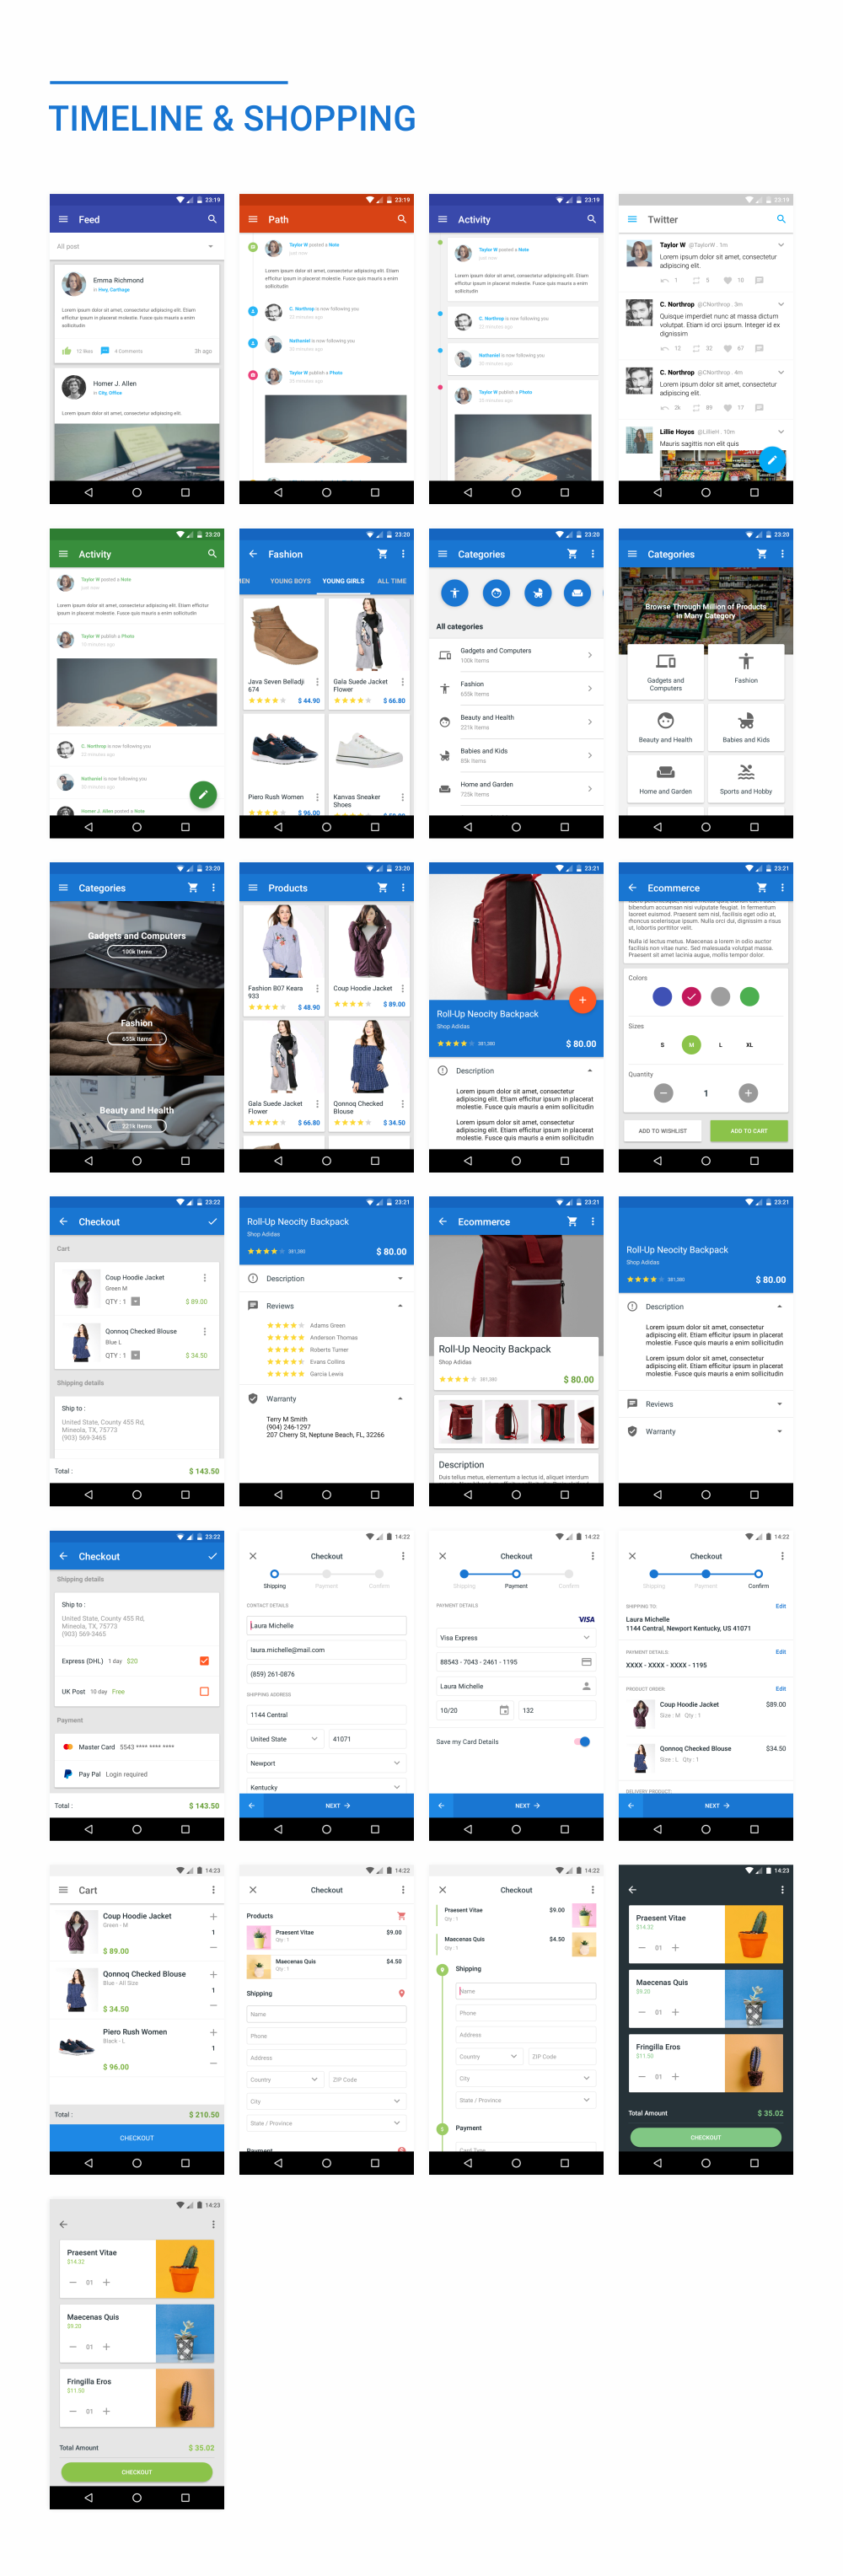 MaterialX - Android Material Design UI Components 2.4 - 44